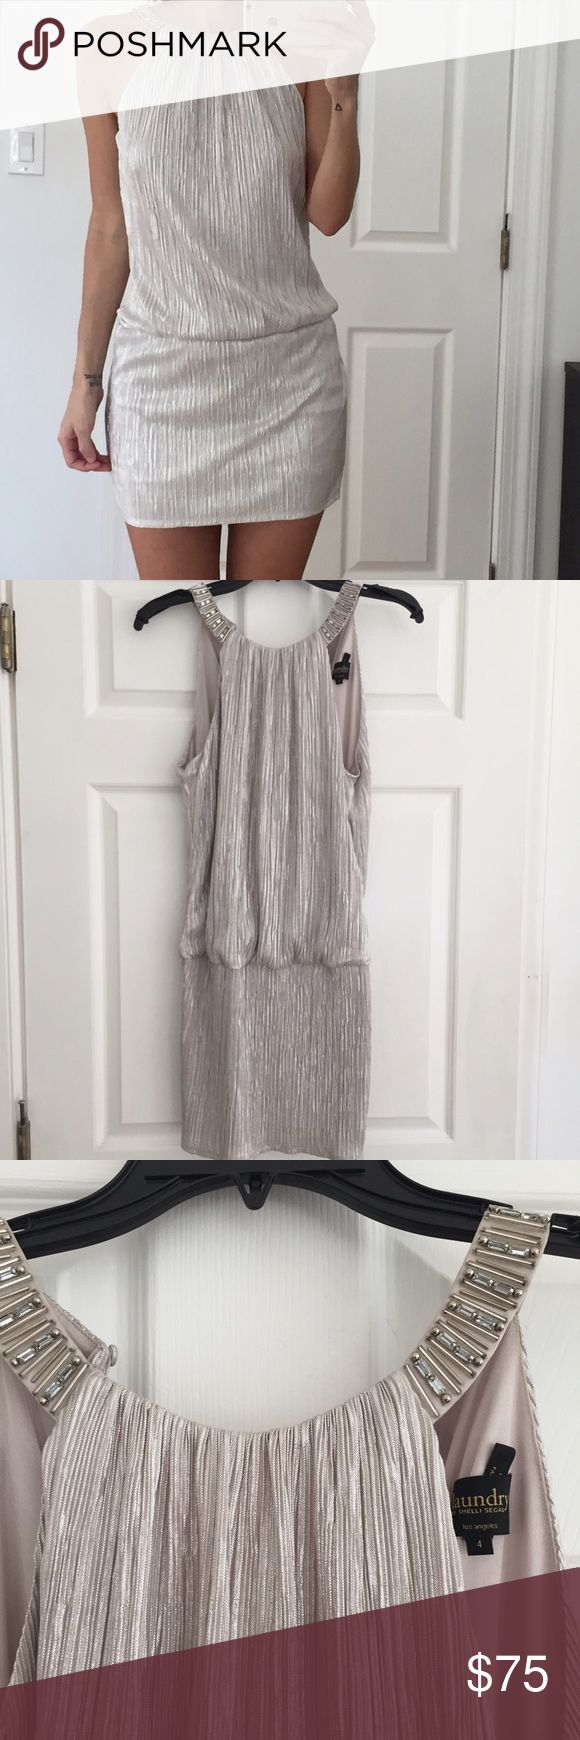 LAUNDRY SHELLI SEGAL LOS ANGELES - silver dress LAUNDRY SHELLI SEGAL LOS ANGELES - silver dress. Midi dress with jeweled round neck and back zipper. This dress has never been worn. NWT. Purchased from Bloomingdales for an event and I never ended up going. Offers welcome. Laundry by Shelli Segal Dresses Midi